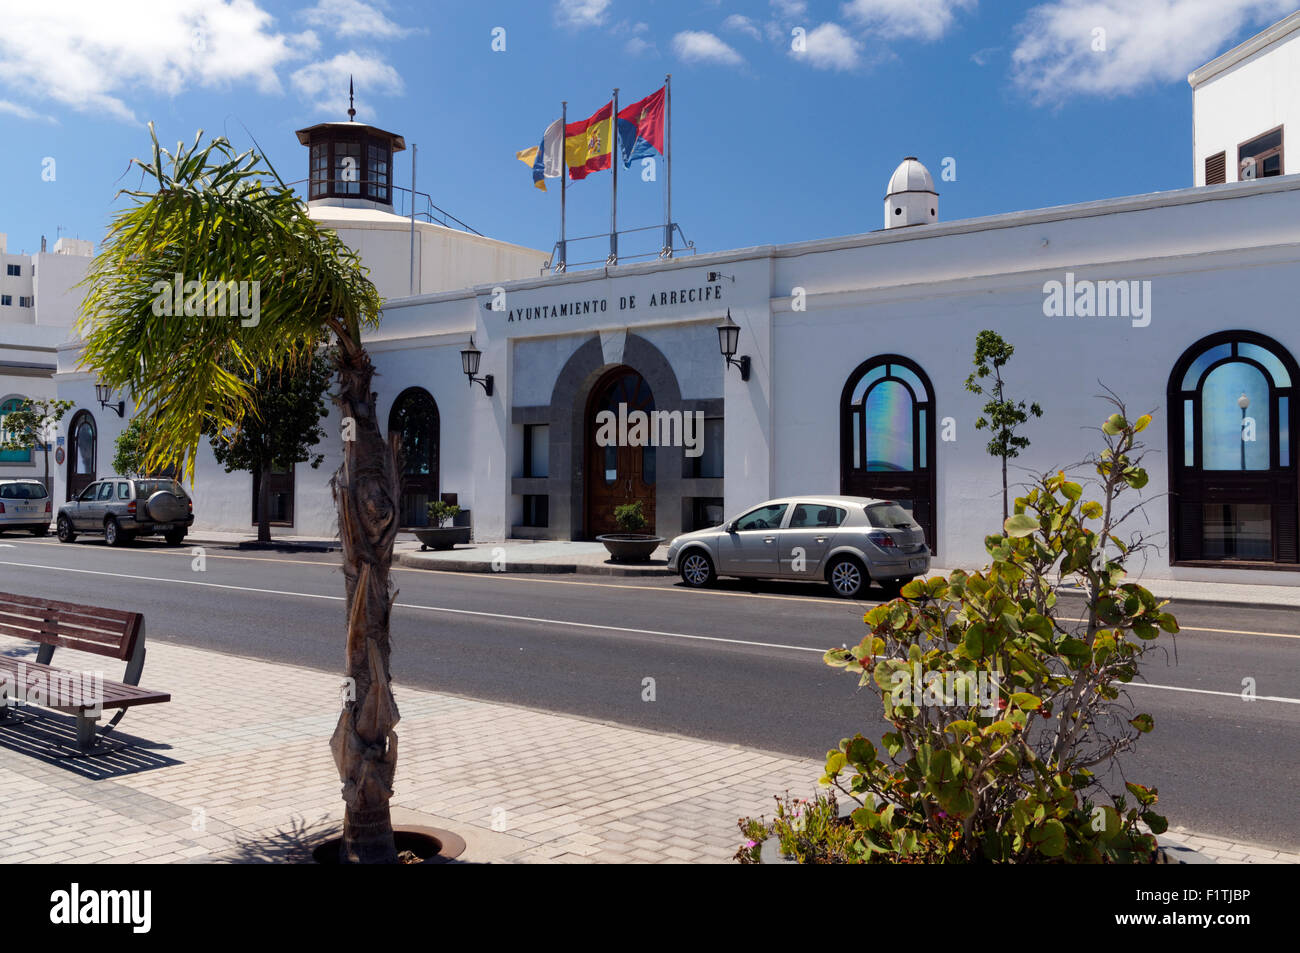 Excmo Ayuntamiento or Town council building Arrecife, Lanzarote, Canary Islands, Spain. - Stock Image